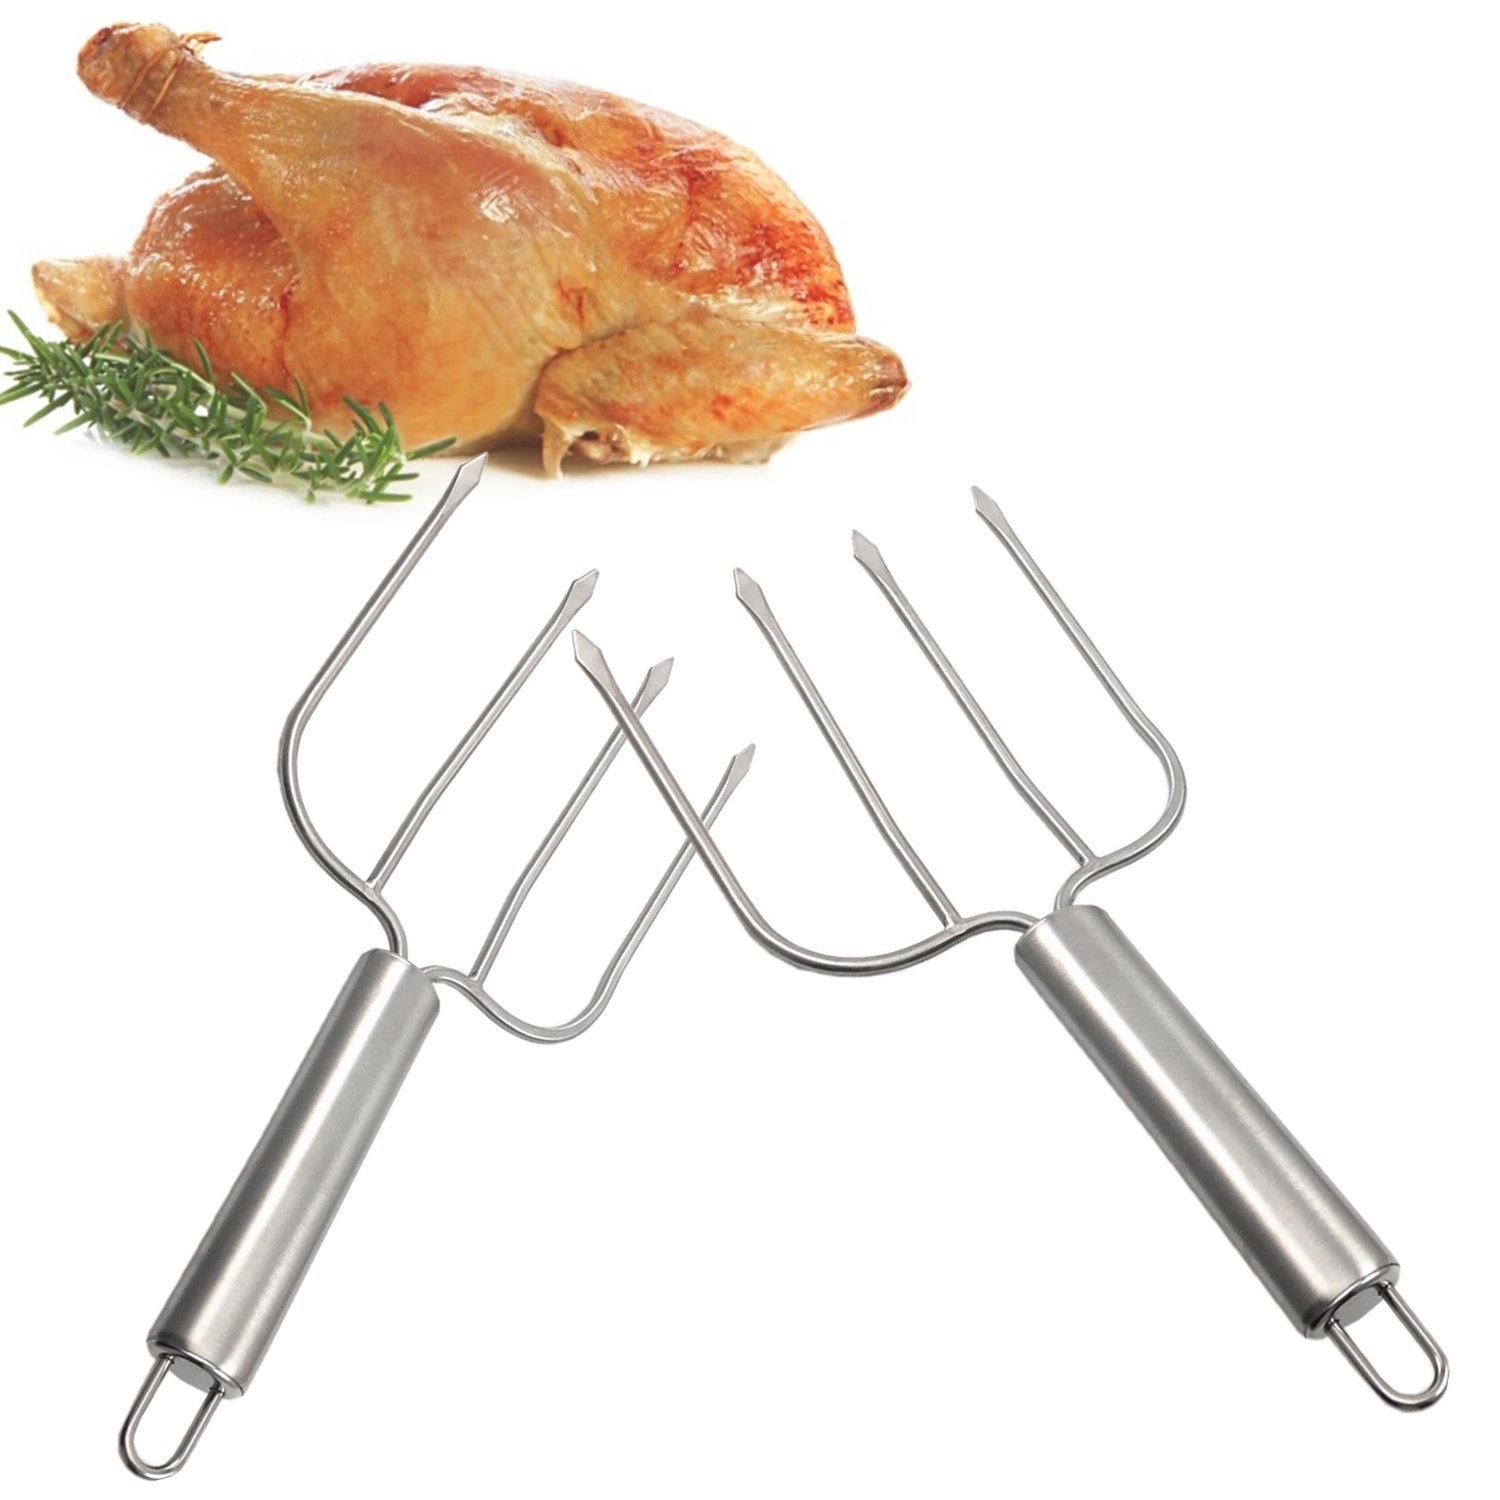 Thanksgiving Turkey Lifter Serving Set, Roaster Poultry Forks,Set of 2